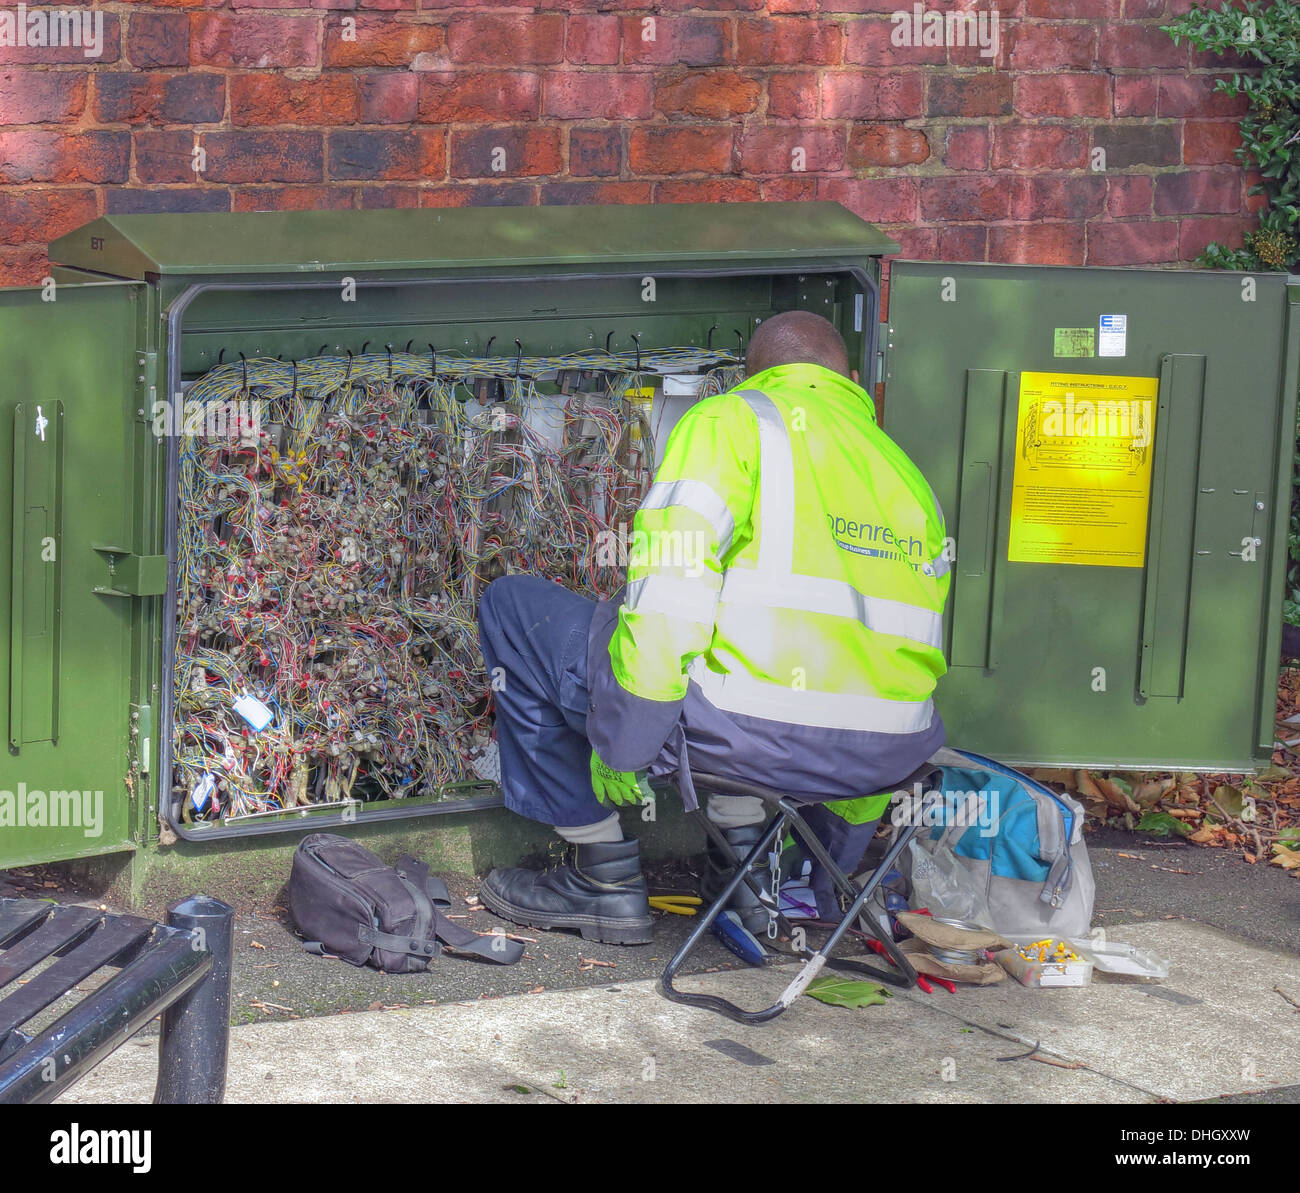 BT Openreach telecoms engineer fixing fault in green roadside box - Stock Image